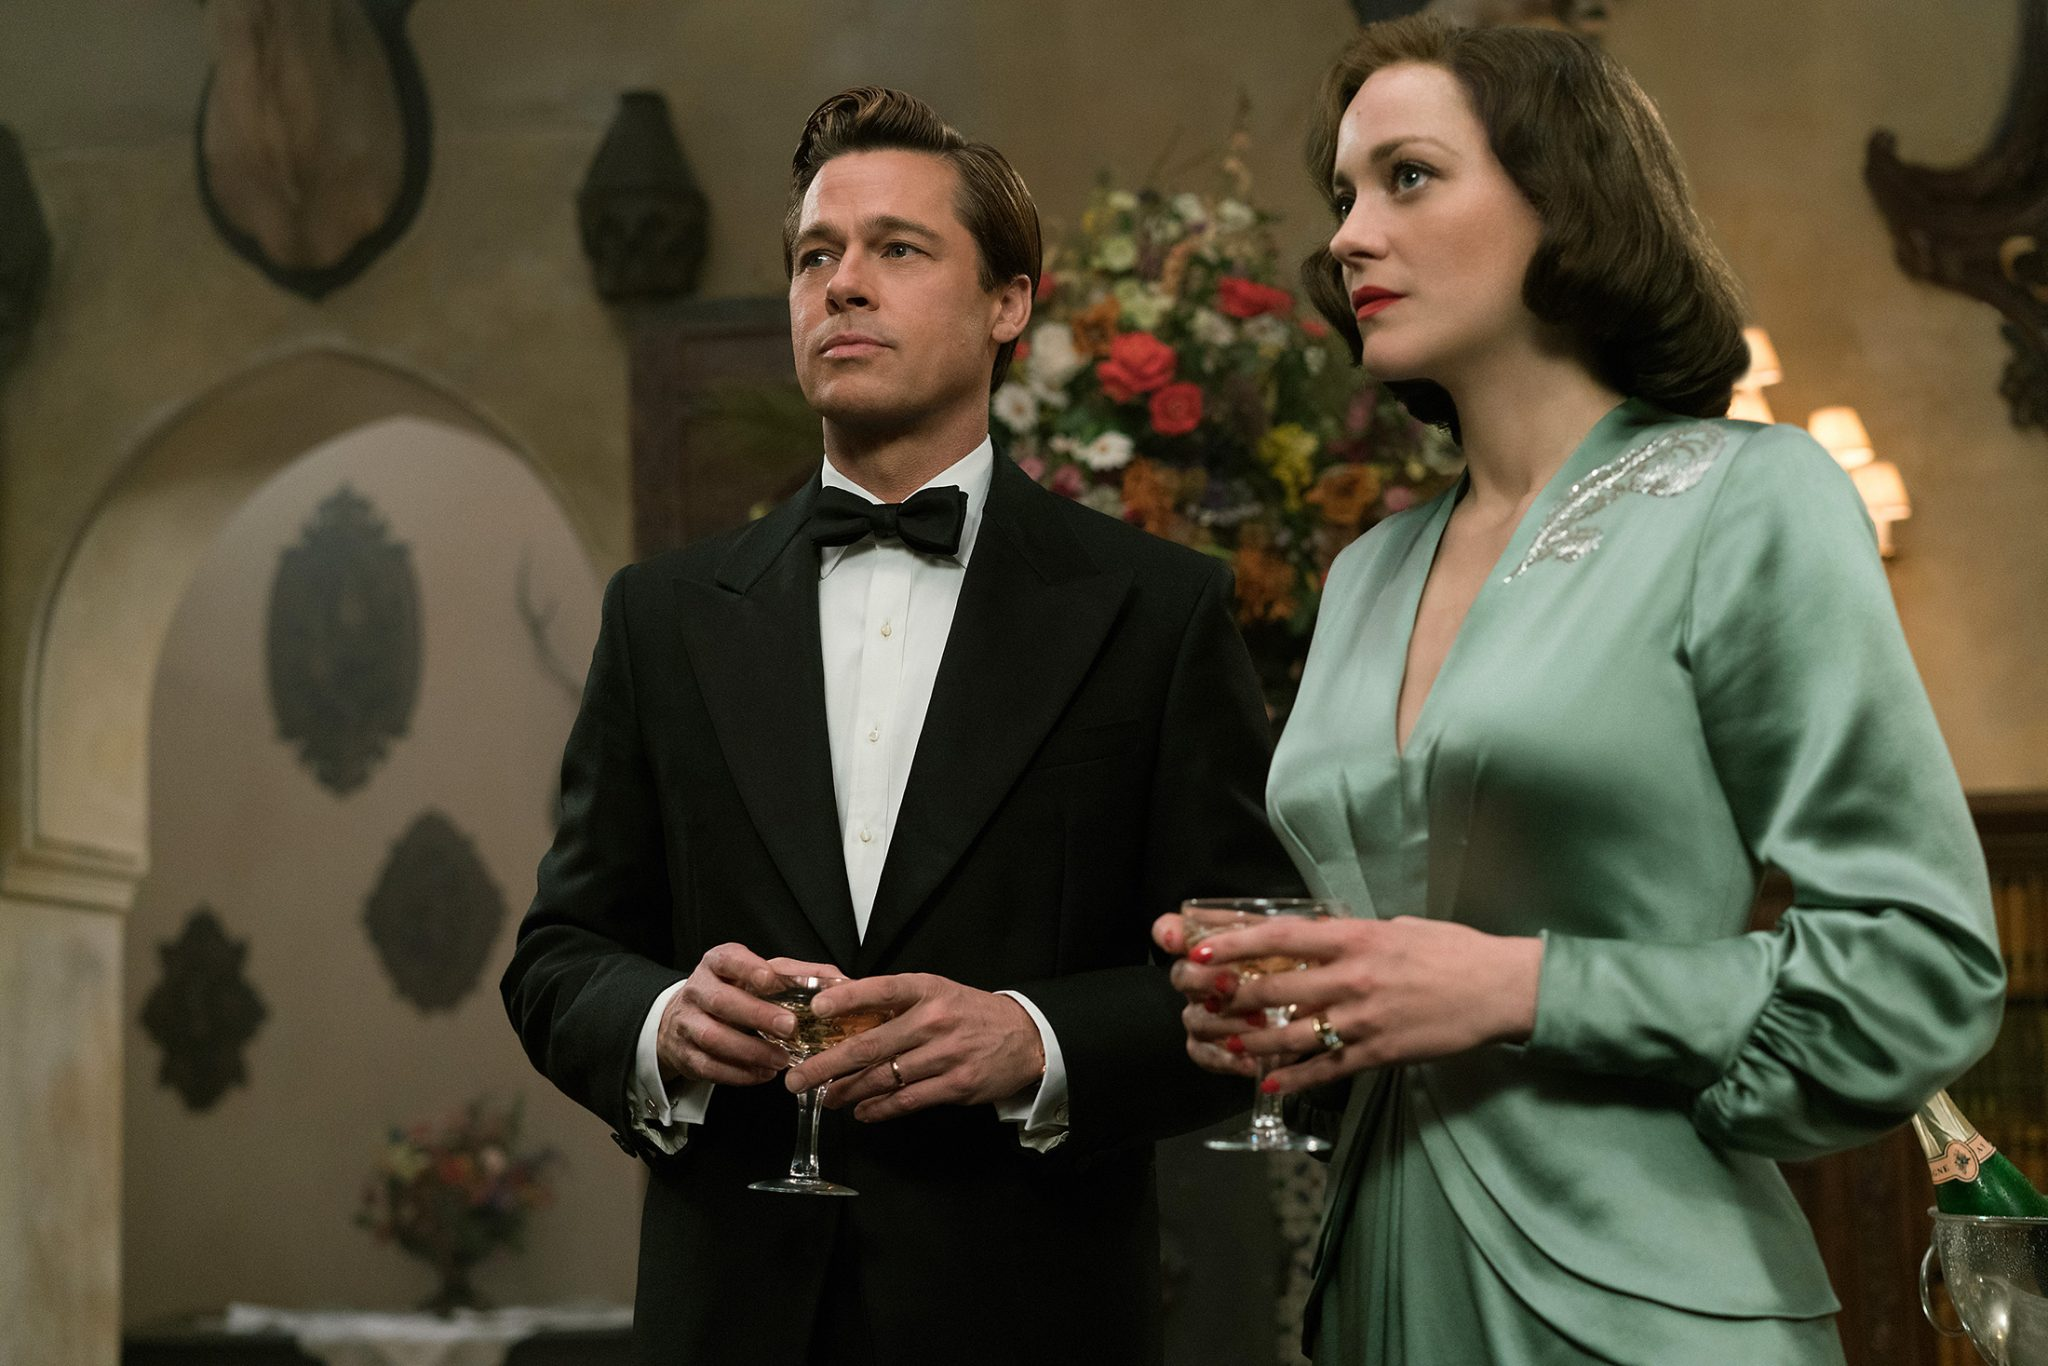 allied-brad-pitt-marion-cotilalrd-09r7-2